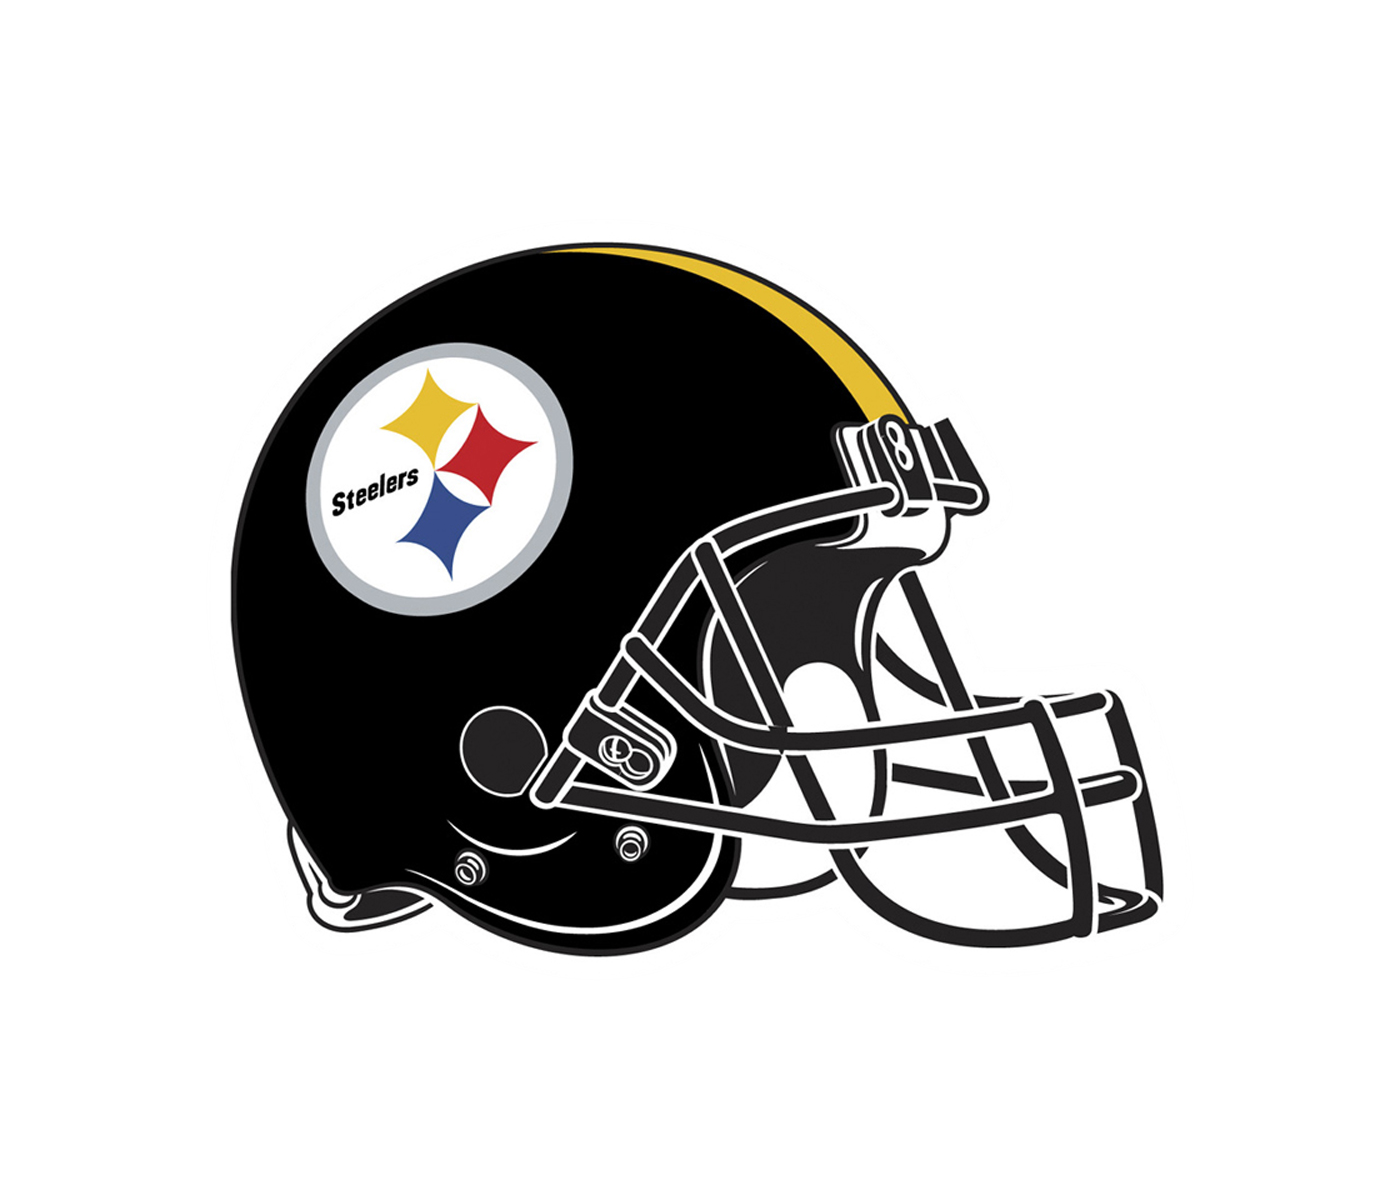 steelers vector helmet